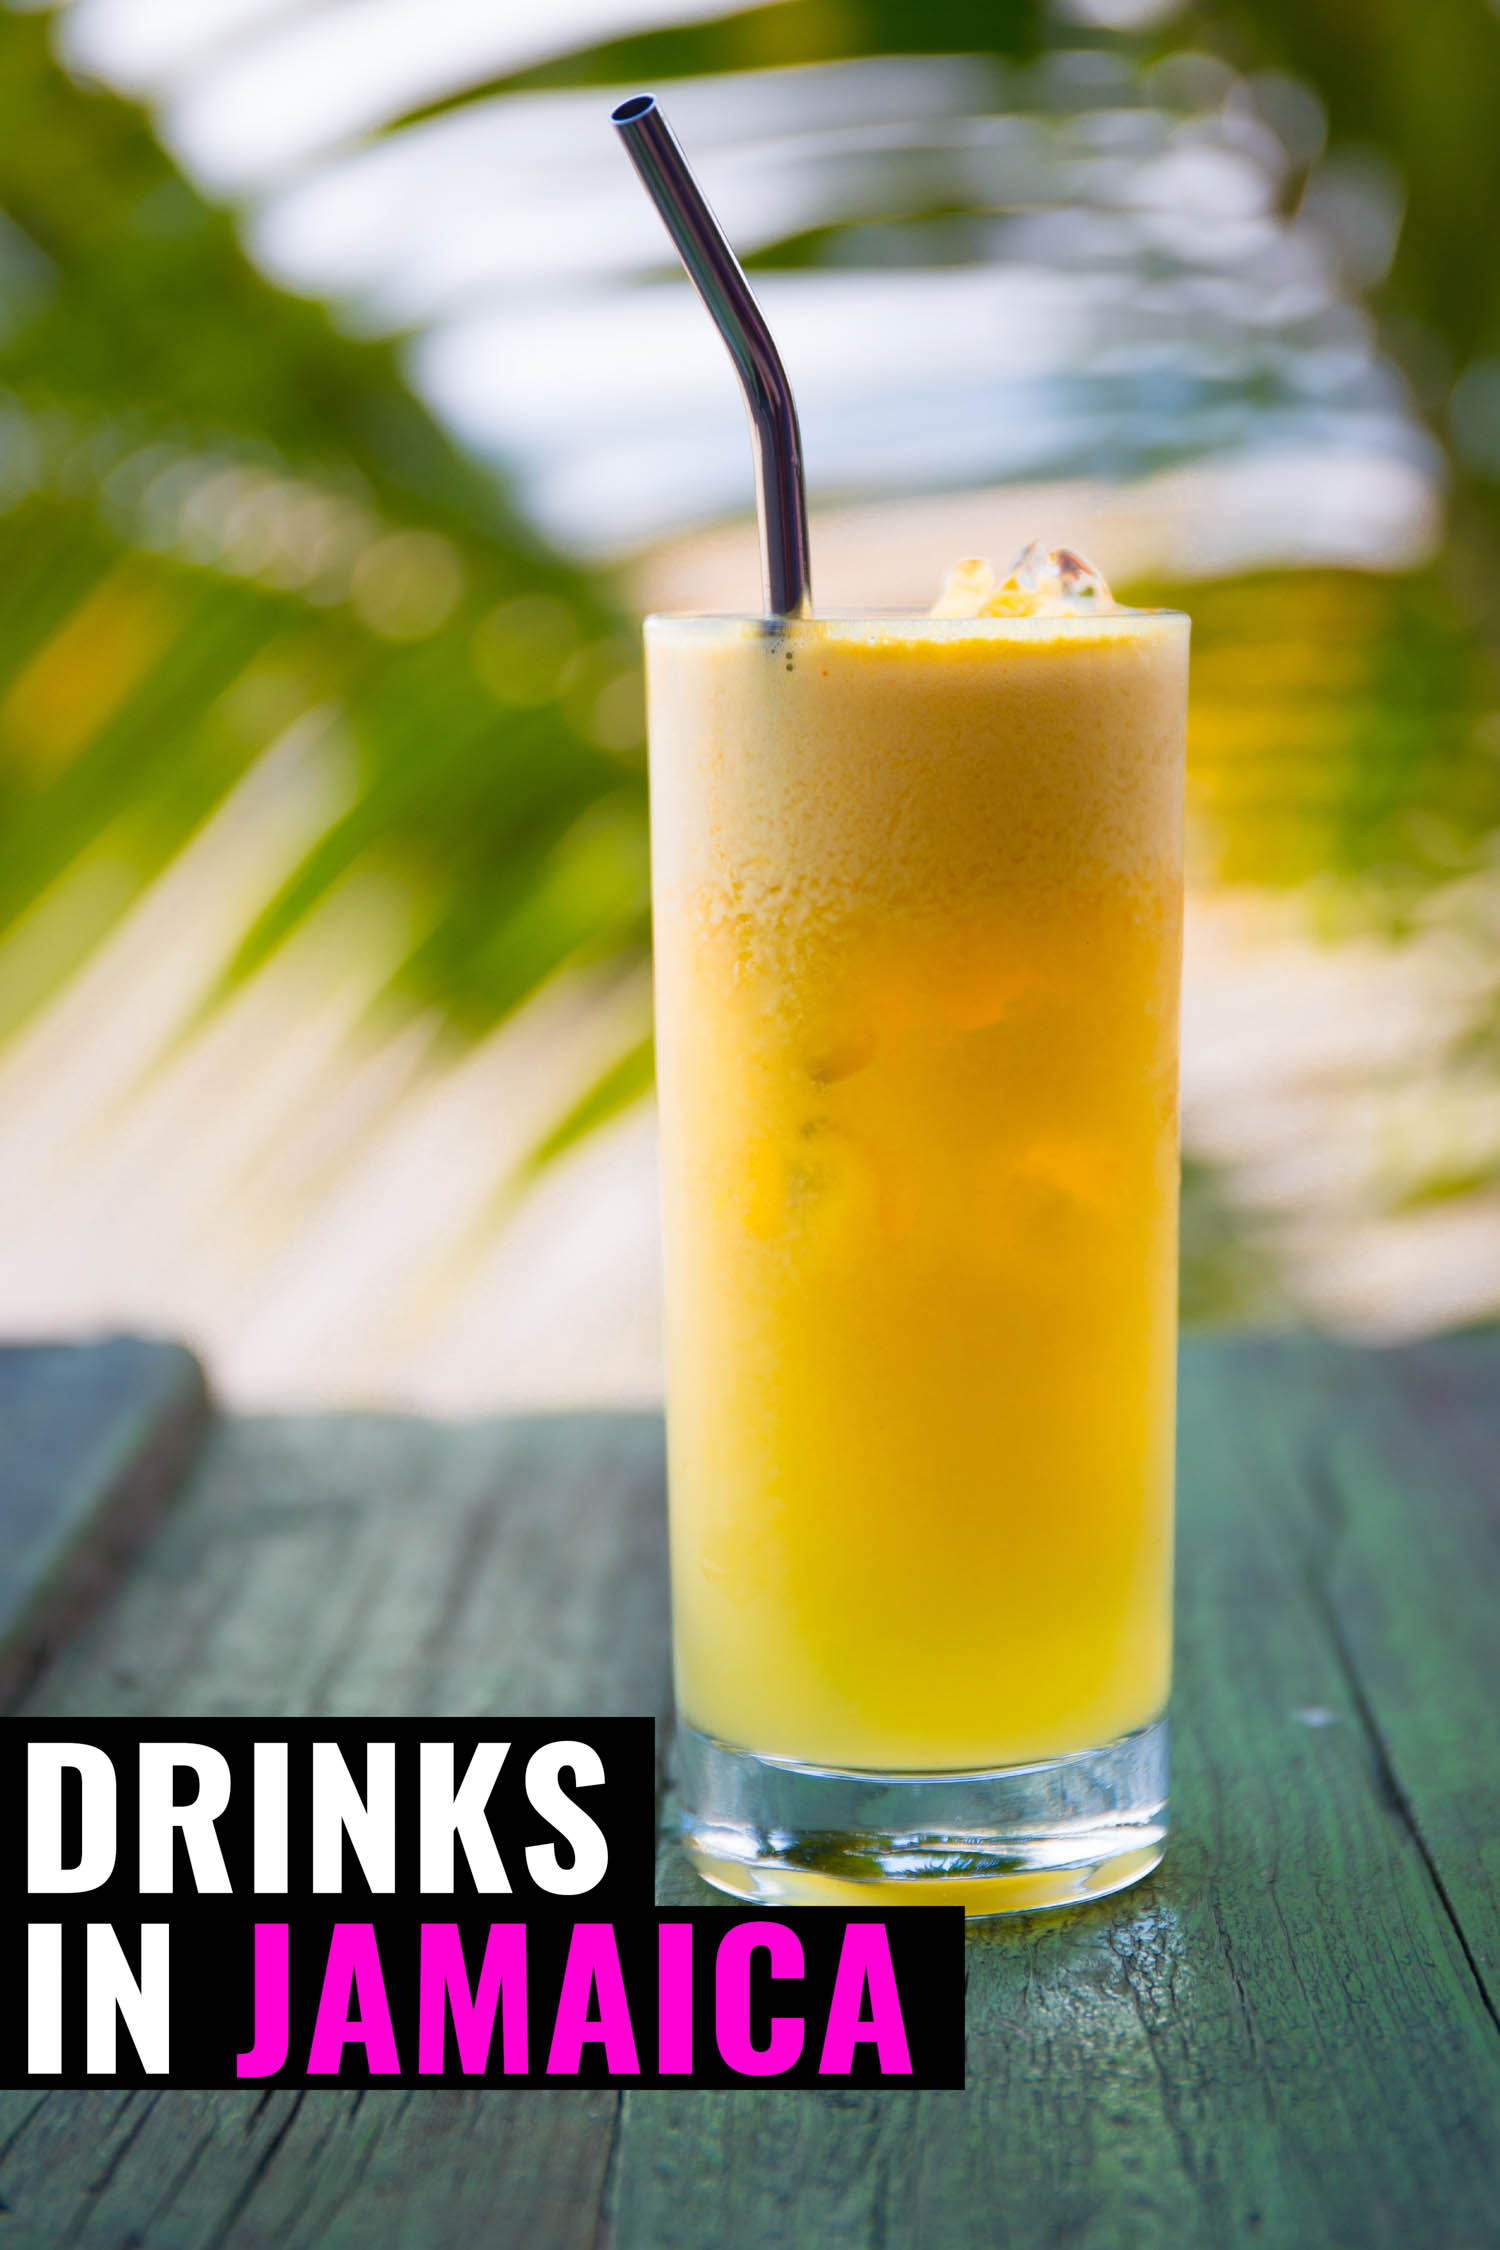 Tropical Jamaican drink on a table with palm trees in the back